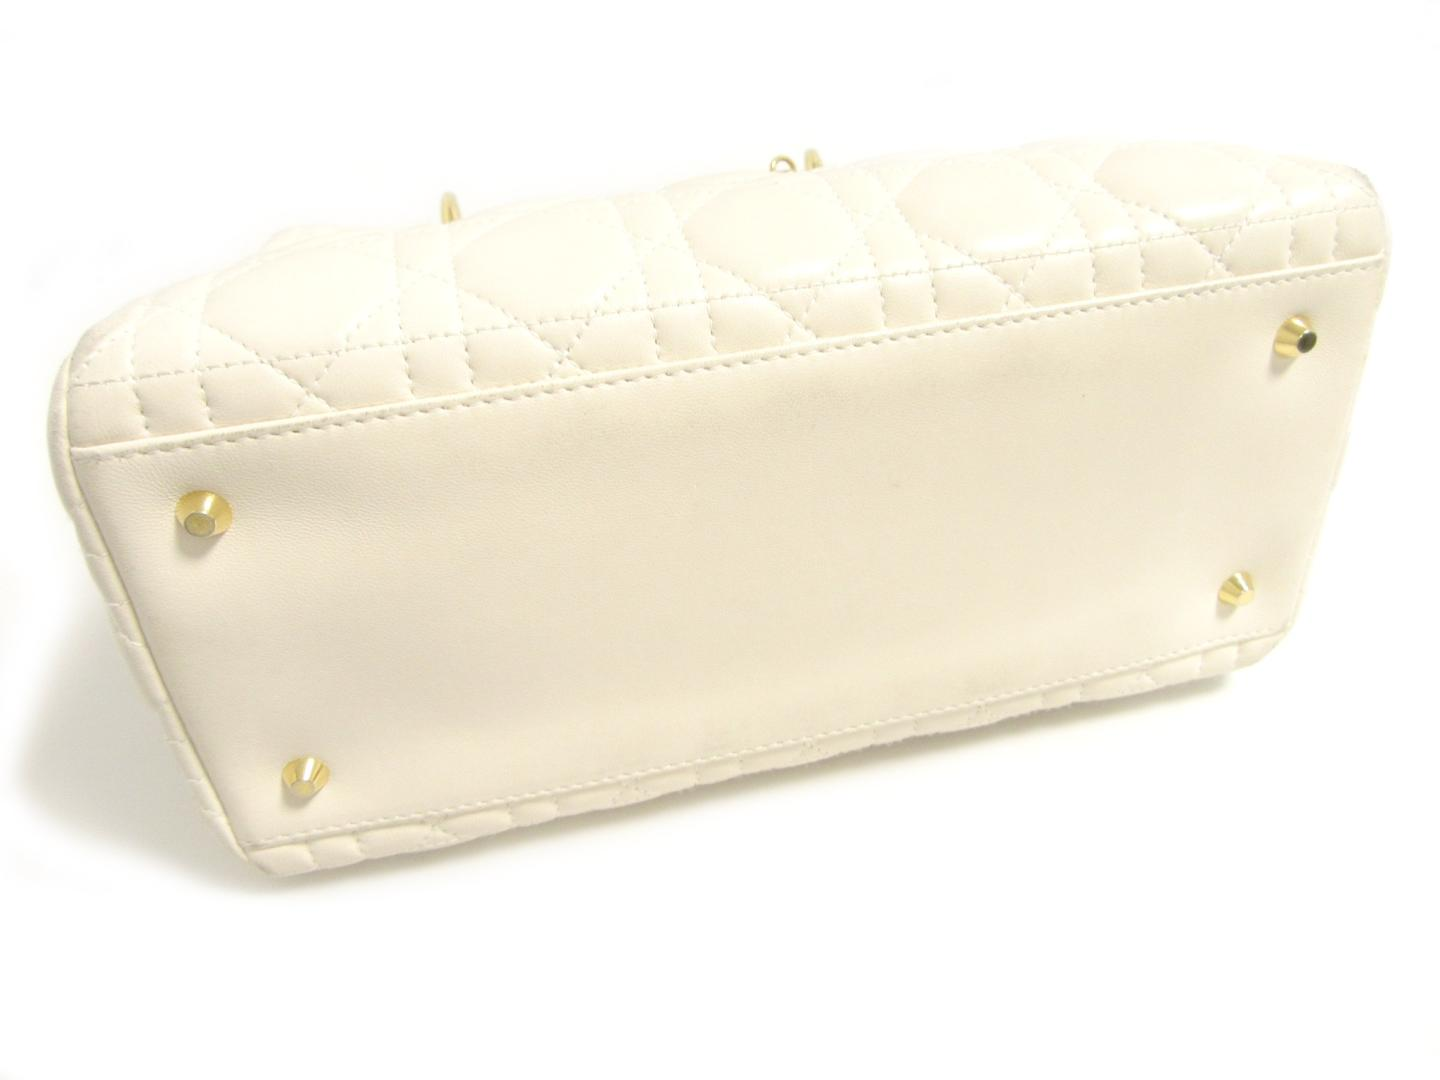 b33fef8acbb9 Authentic Christian Dior Lady Dior Tote Hand Bag Lamb Leather Ivory White  GHW